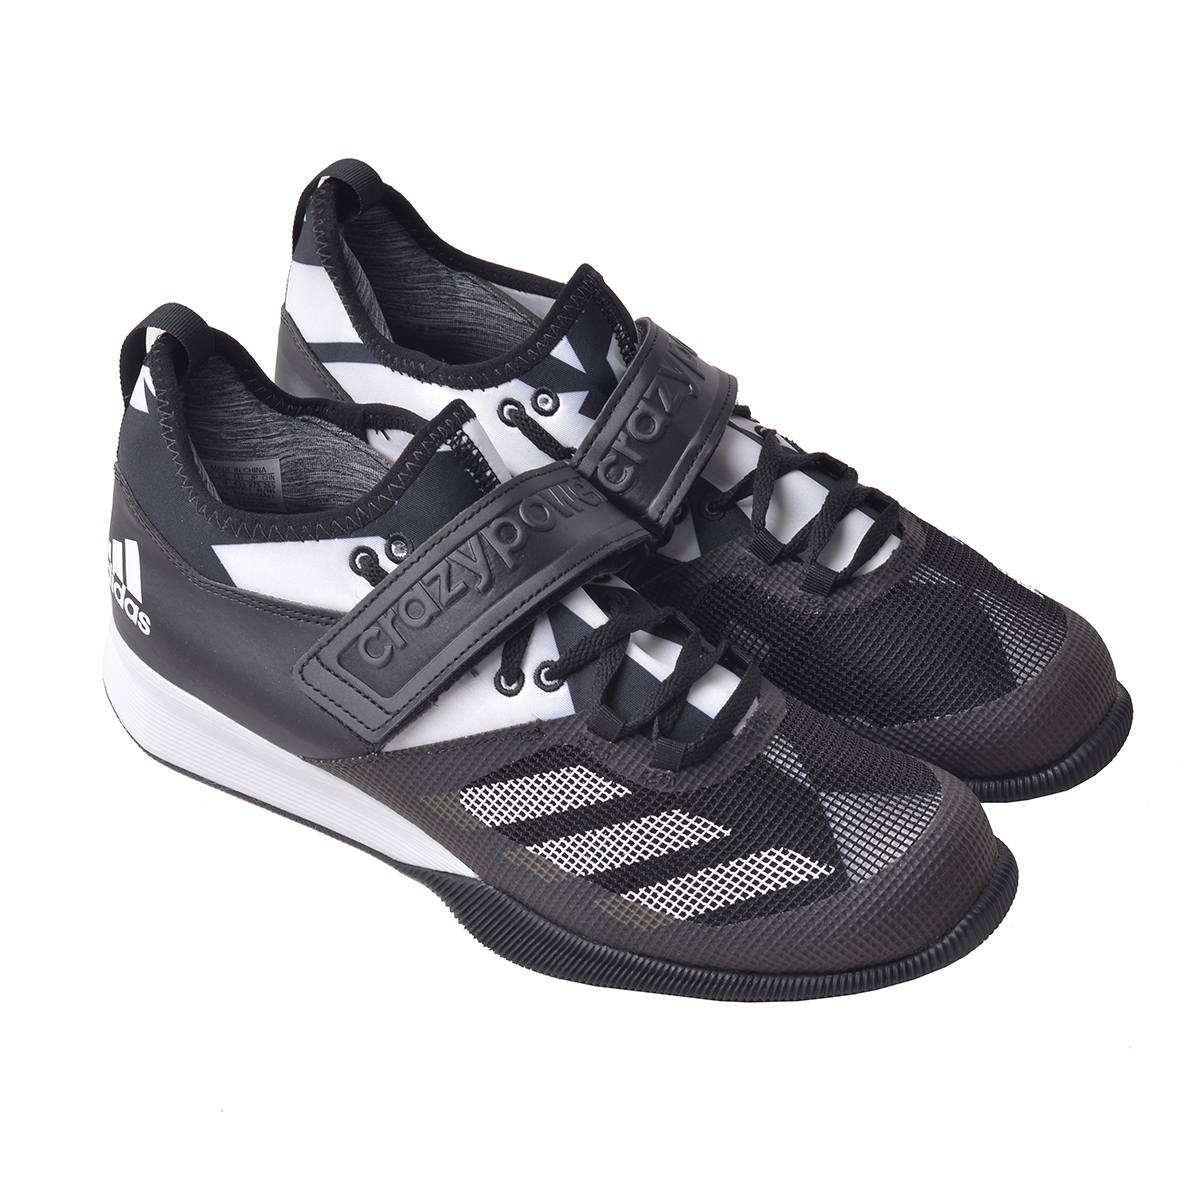 Adidas Crazy Power Weight Lifting Shoes D8 Fitness D8